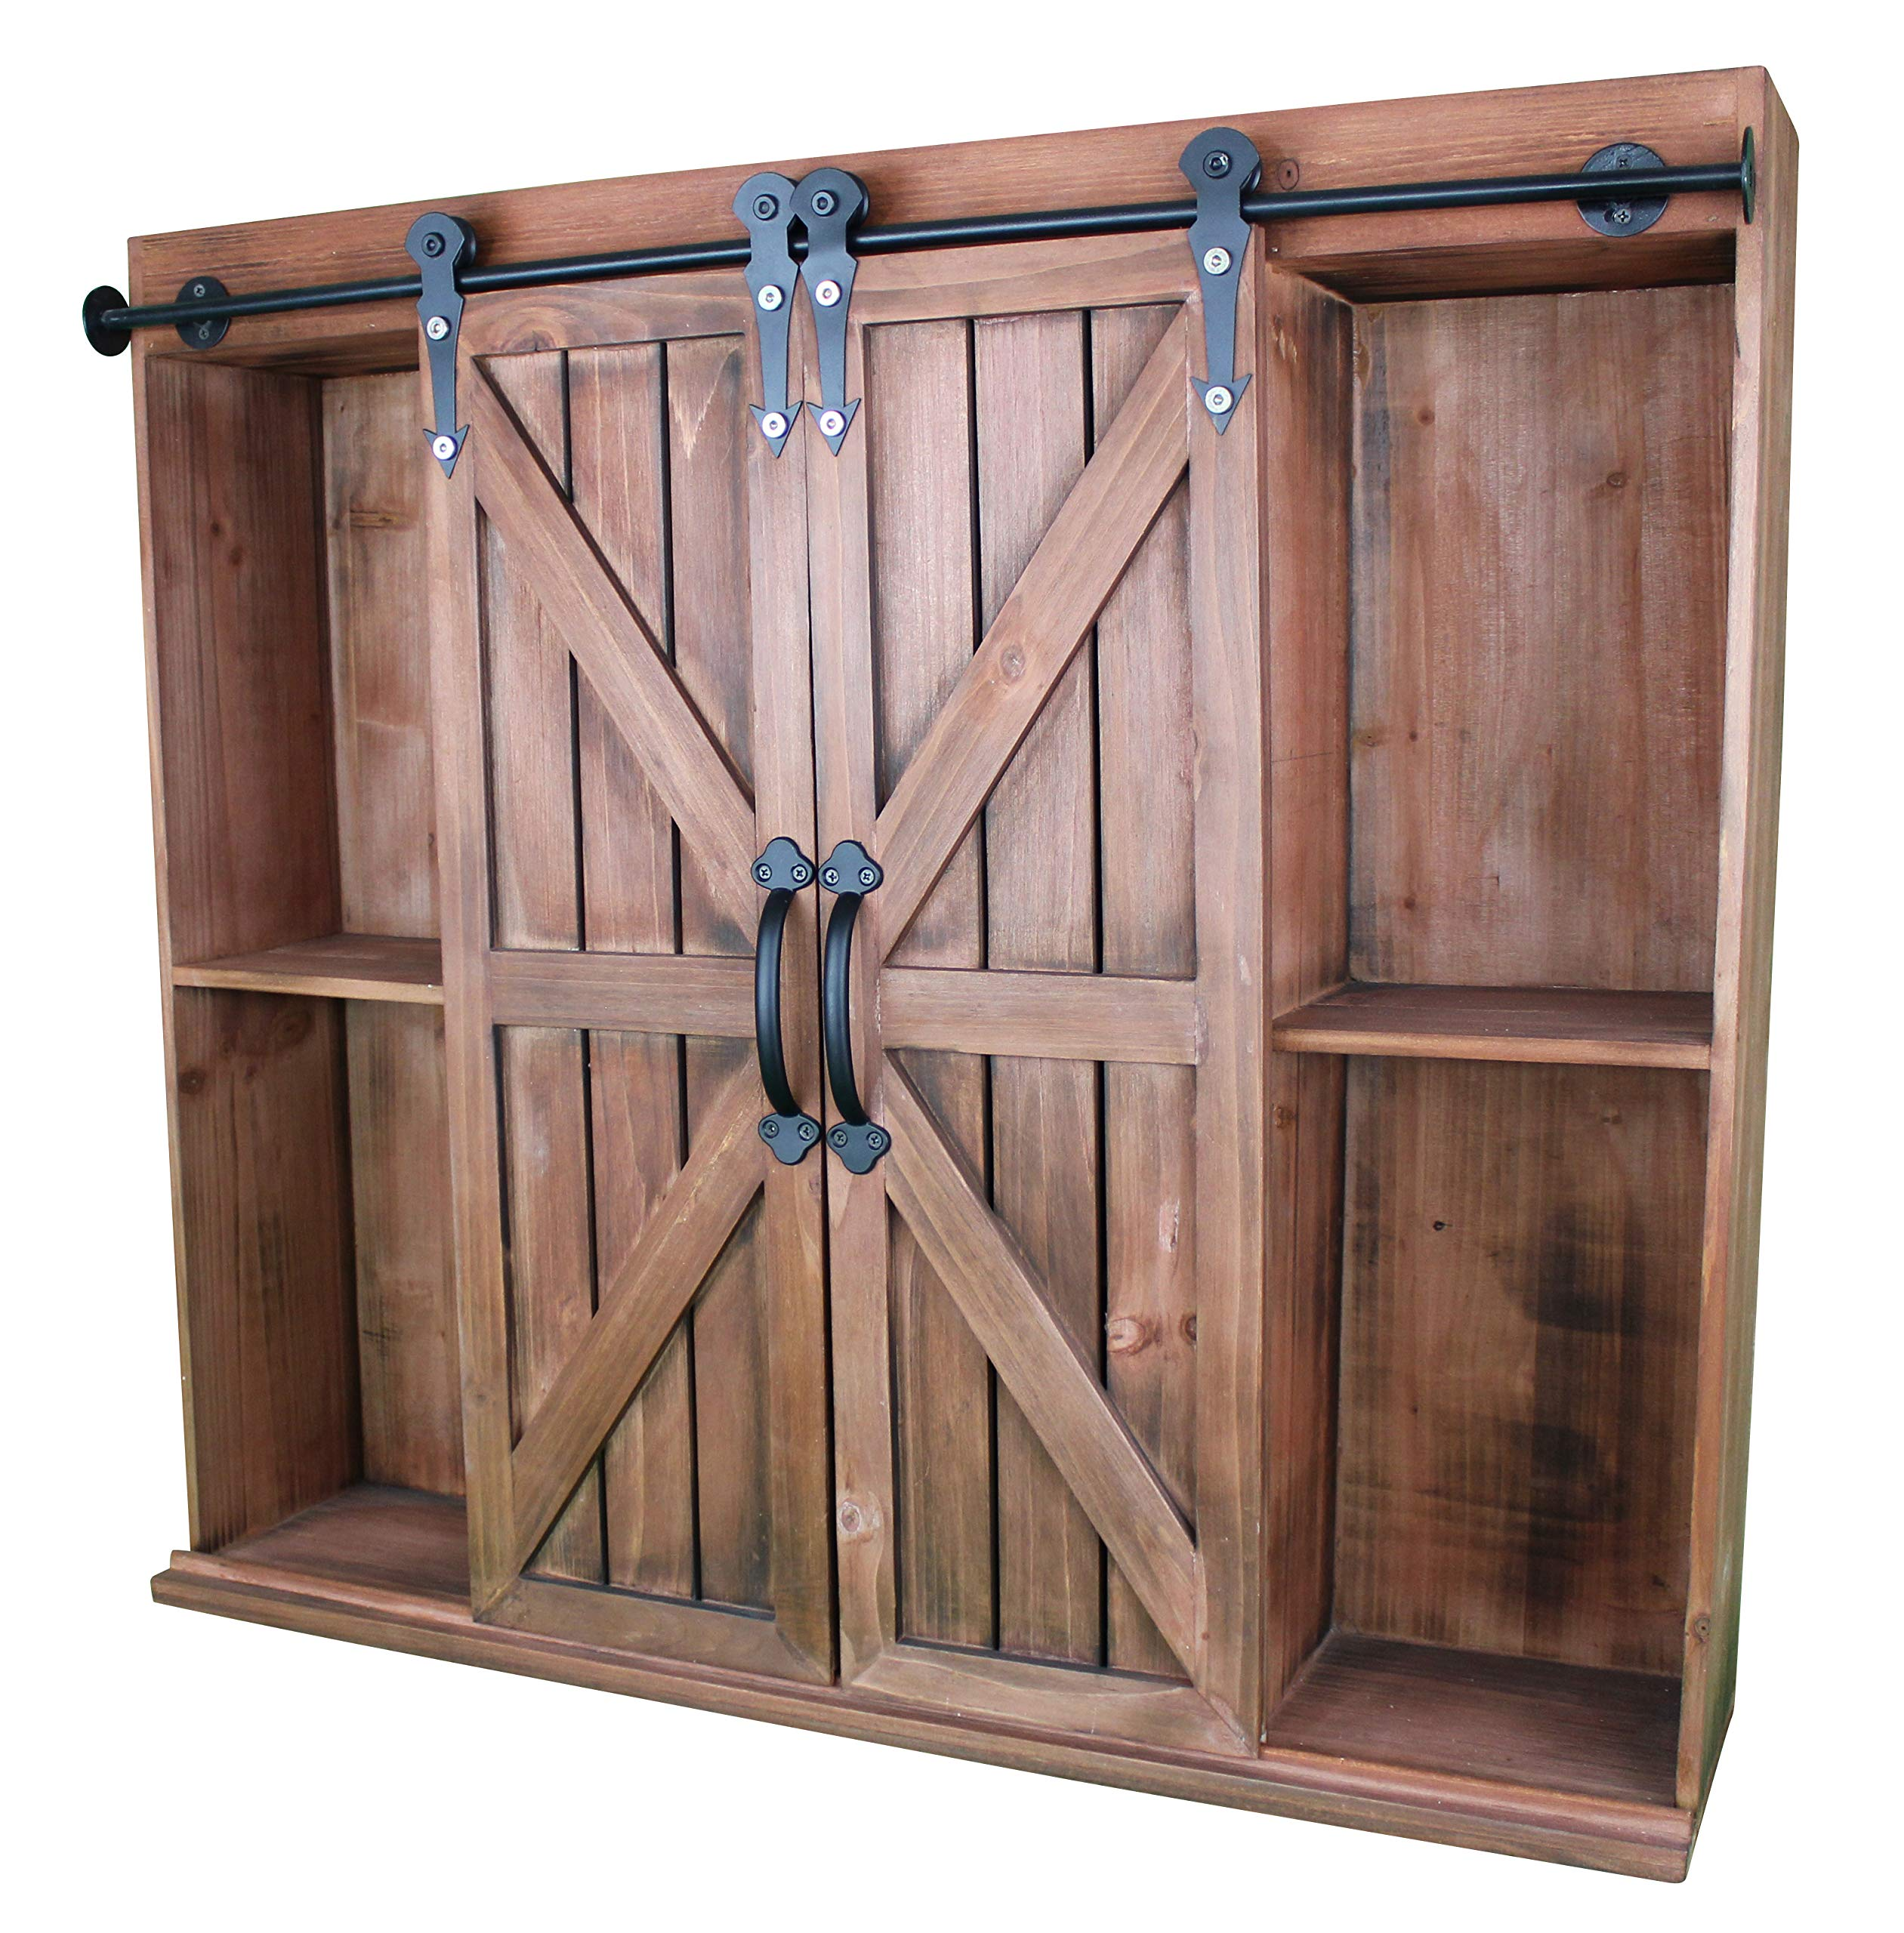 Wooden Wall Mount Decorative Rustic Farmhouse Storage Cabinet & Bookshelf with Sliding Barn Doors – Vintage Cherry